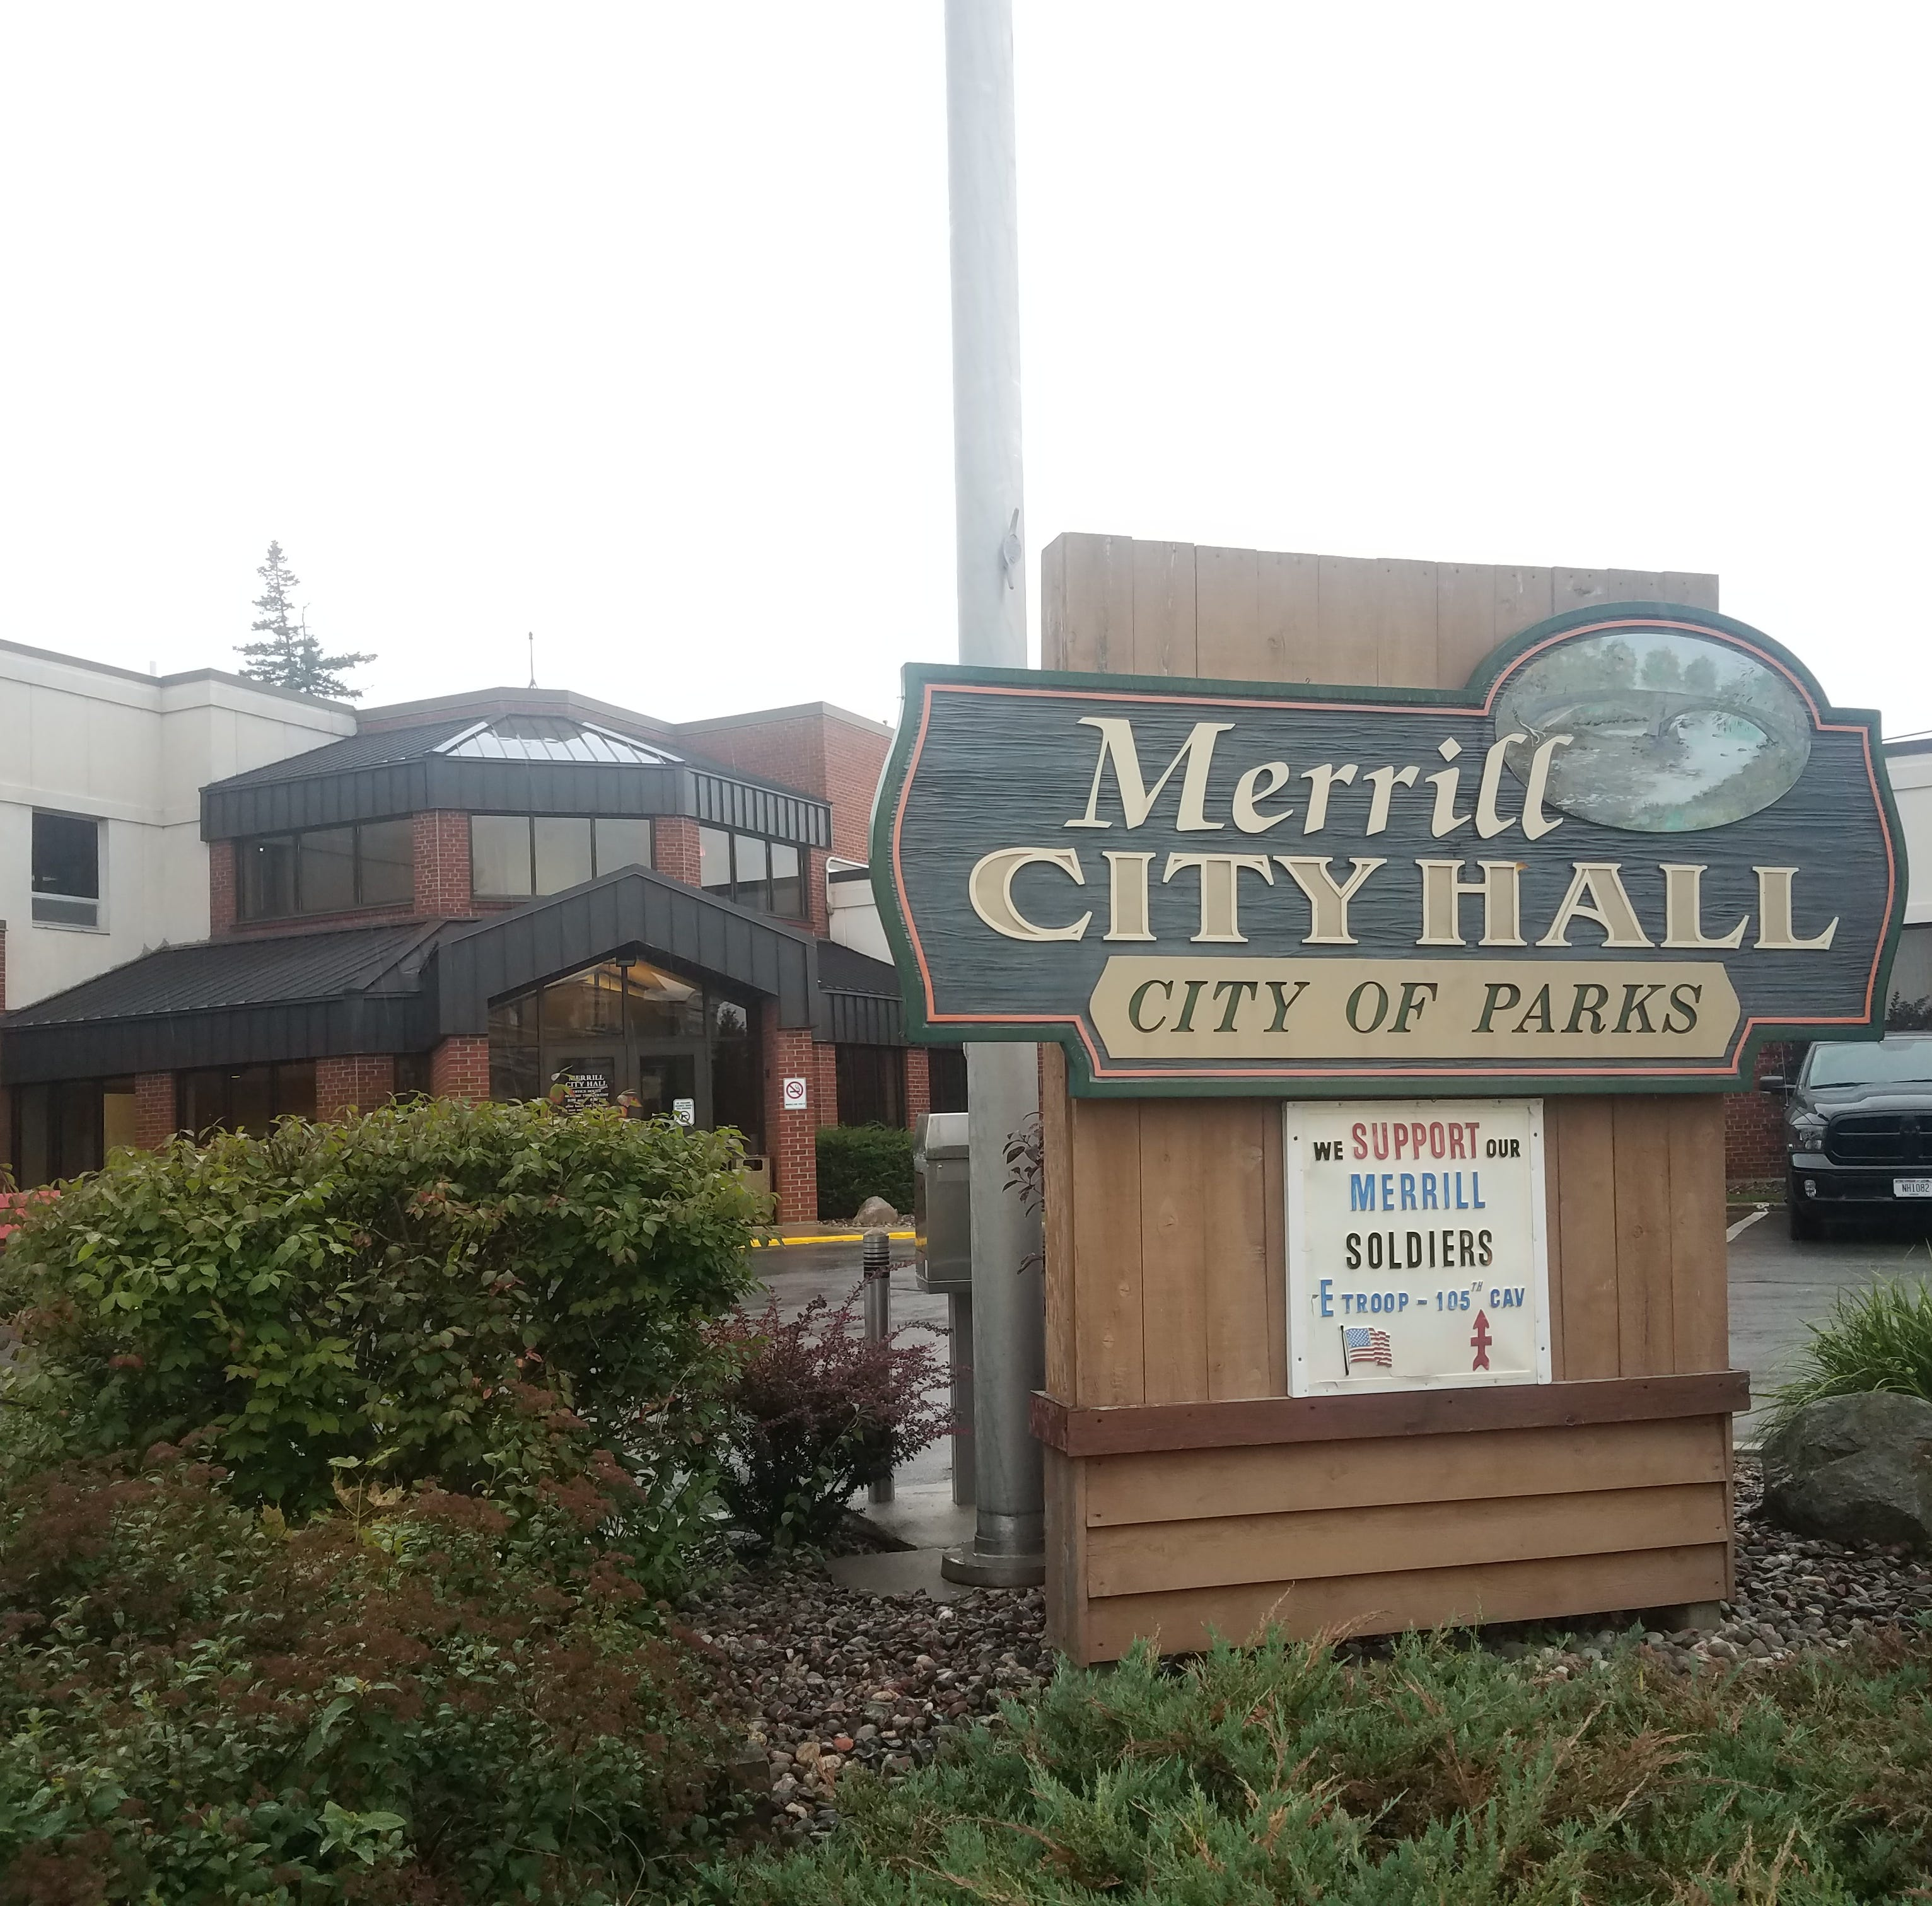 Wausau wall manufacturer to move jobs to Merrill, expand after city offers incentives